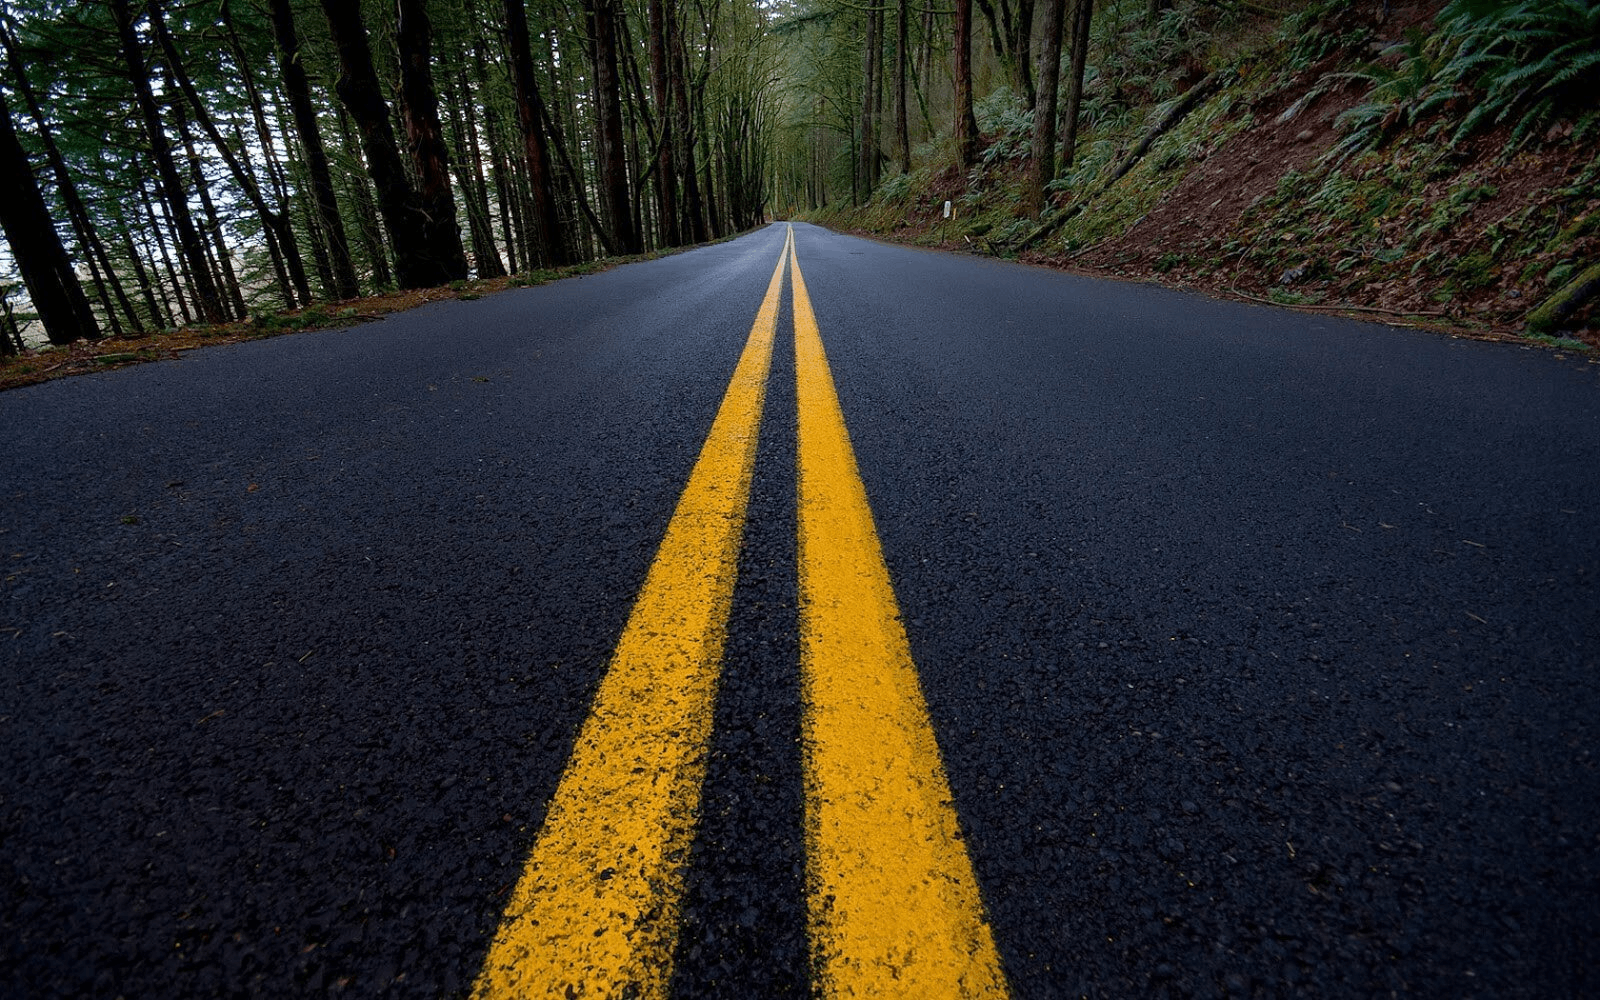 Image of double solid yellow line on road